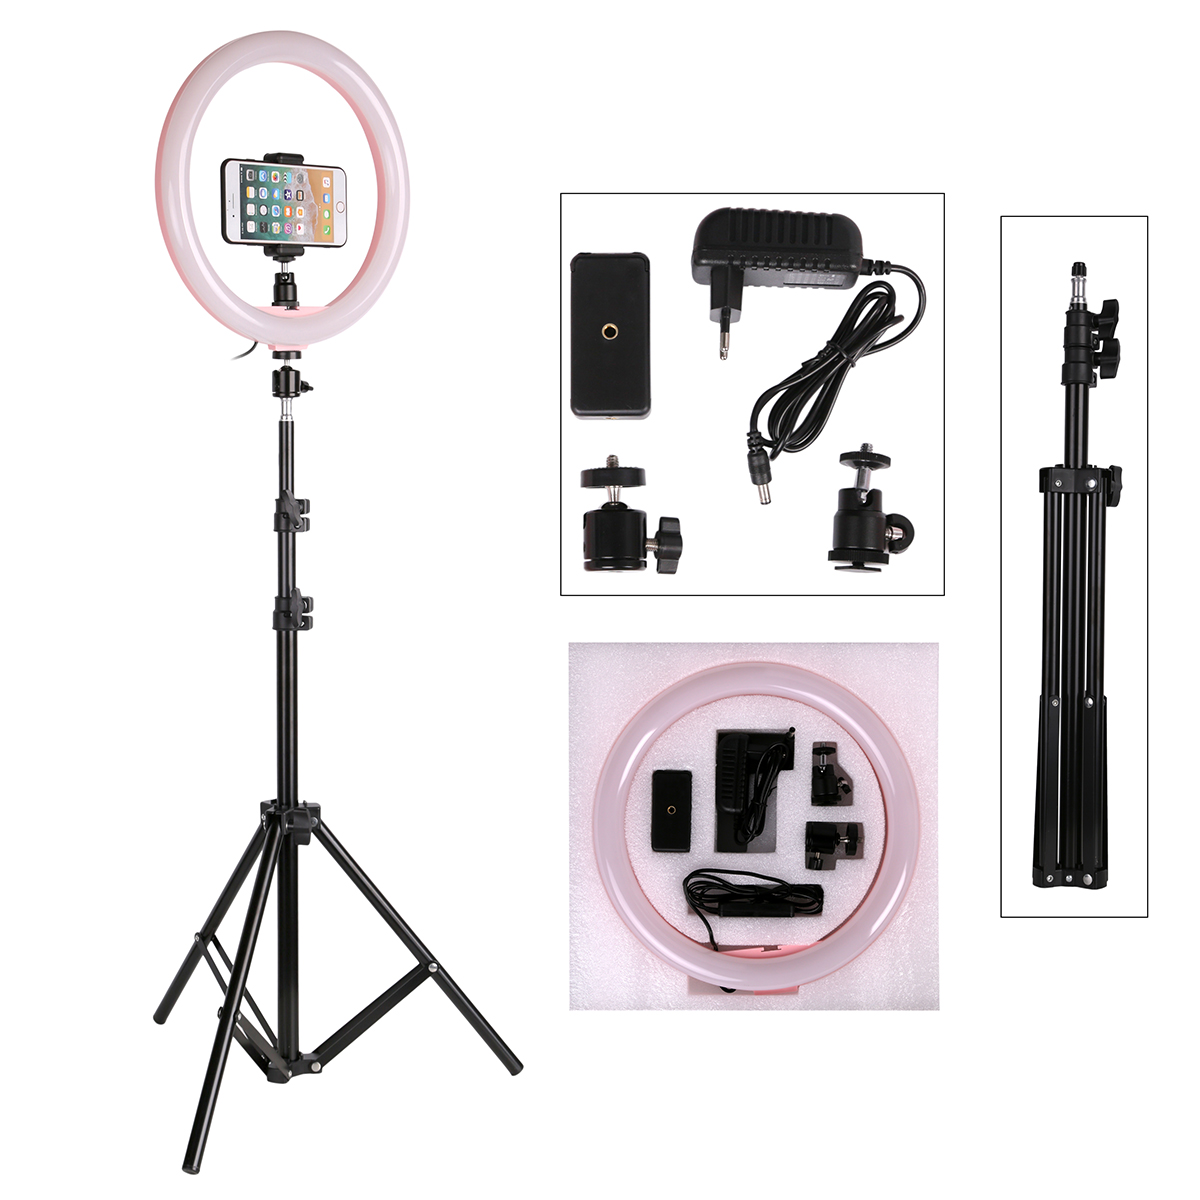 Photography LED Selfie Ring Light Camera Phone With 160CM Stand Tripod For Makeup Video